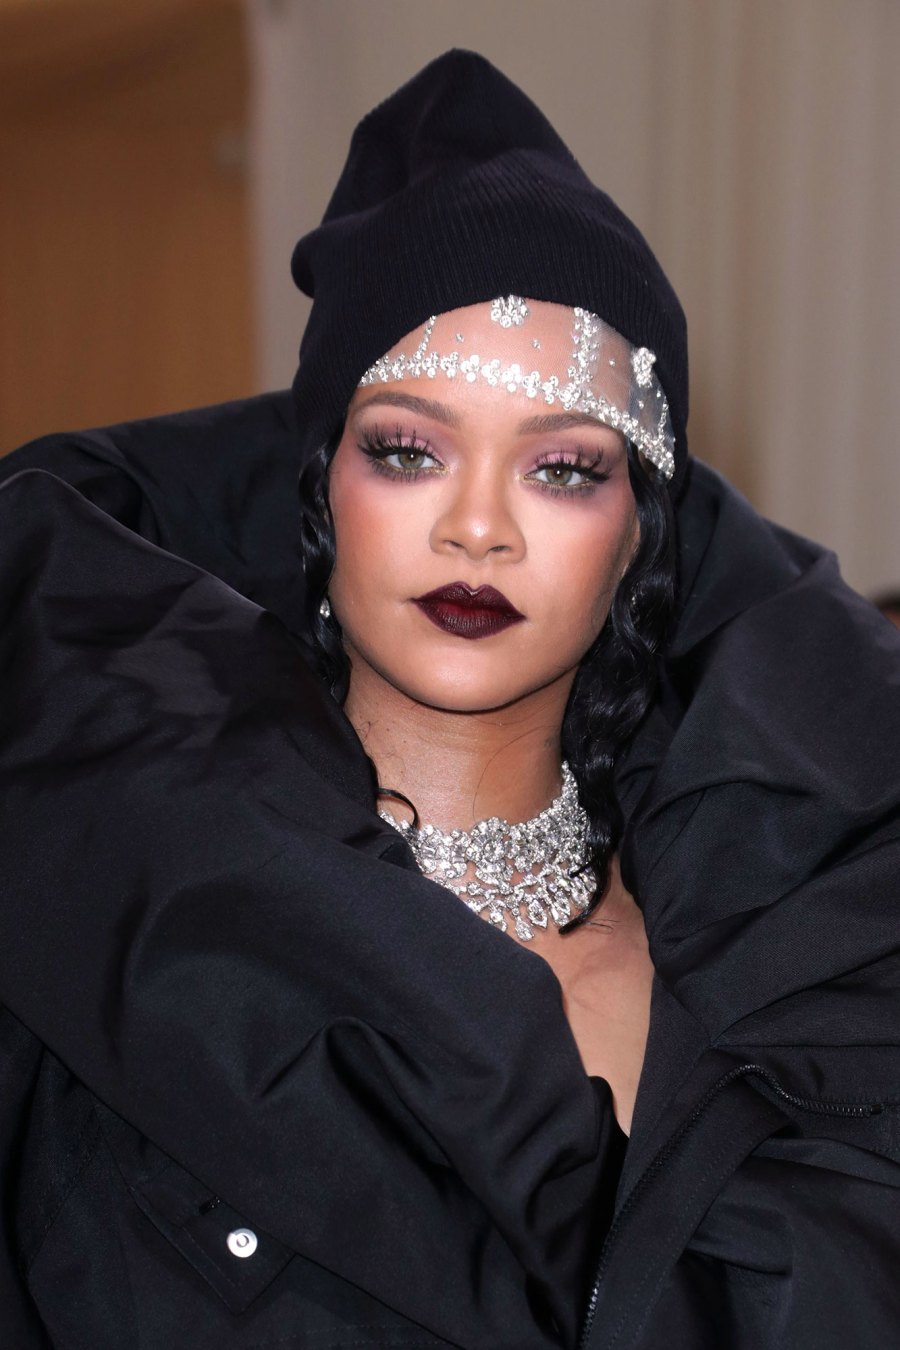 Rihanna Most Extravagant Celebrity Bling From the 2021 Met Gala